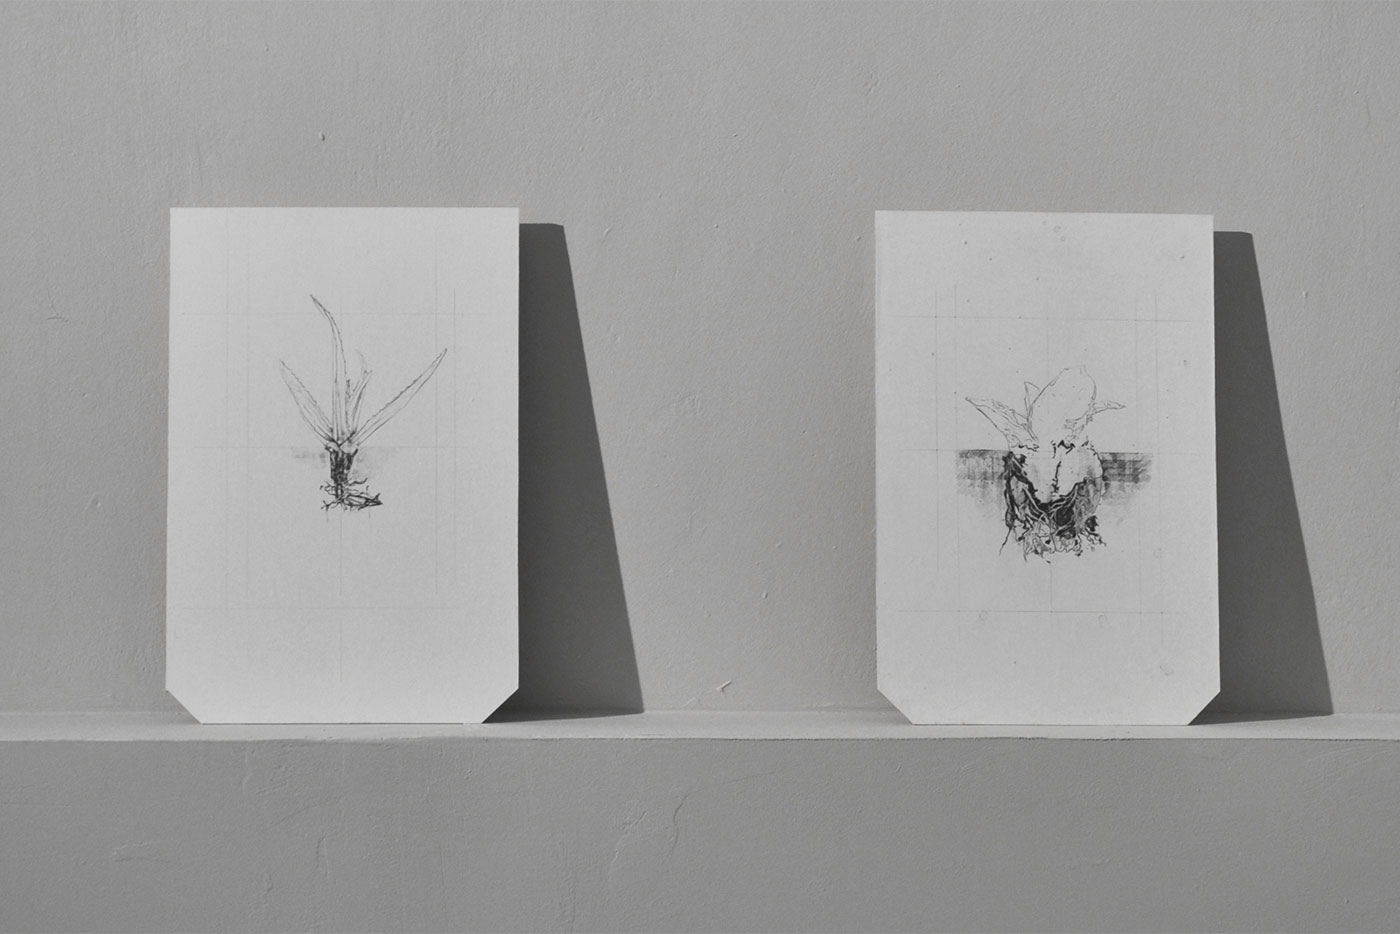 graphite on paper, wood panels, audio virtual surround. Installation view Z2O Gallery